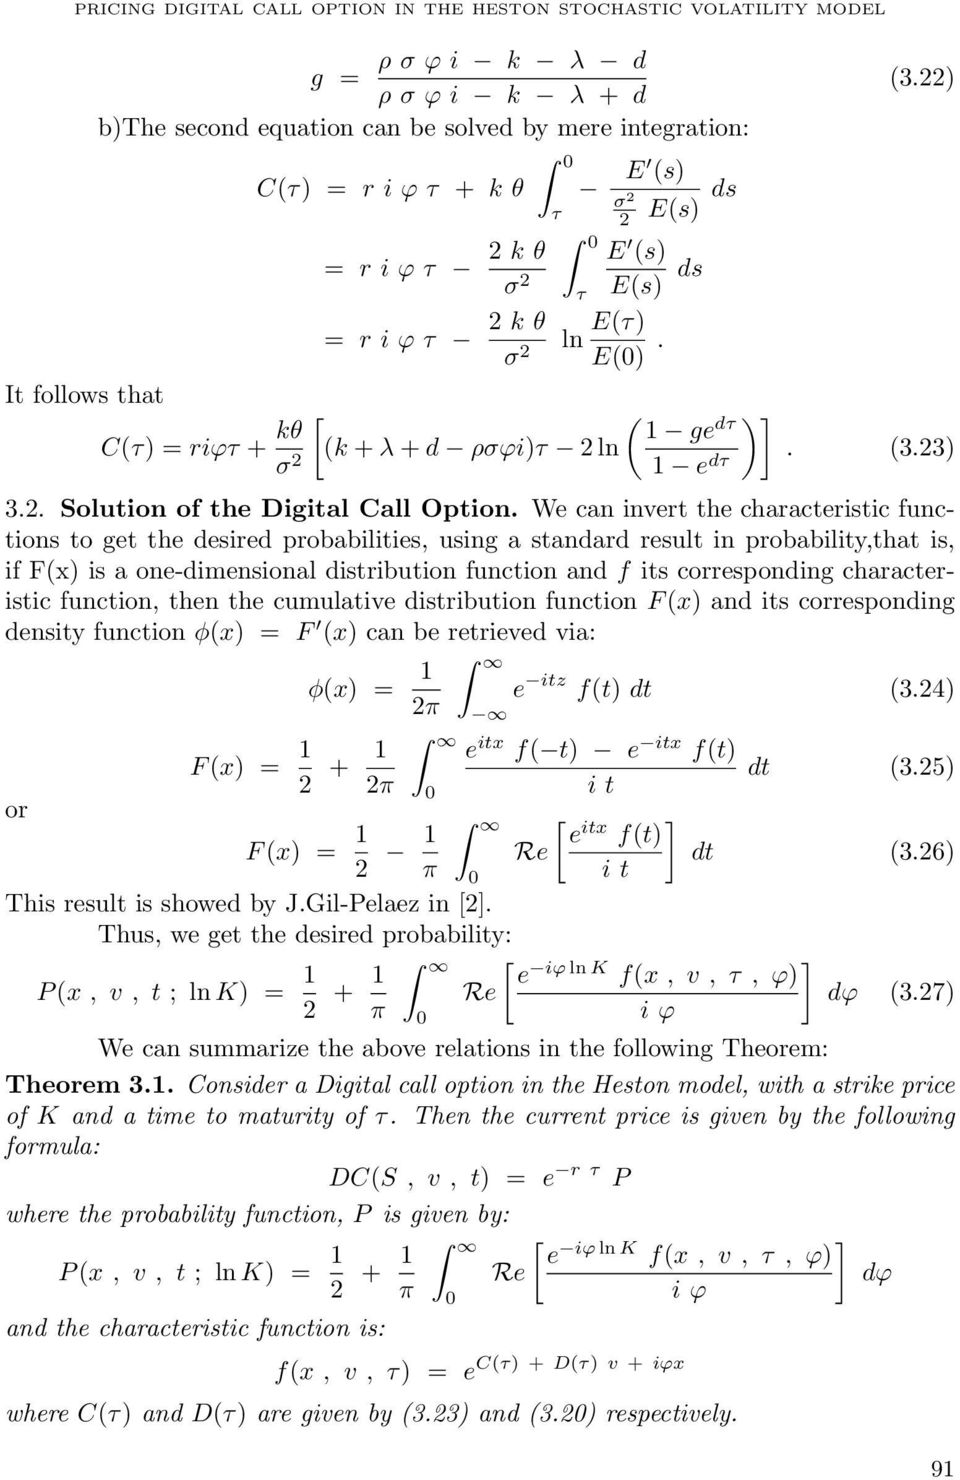 We can invert the characteristic functions to get the desired probabilities, using a standard result in probability,that is, if F(x) is a one-dimensional distribution function and f its corresponding